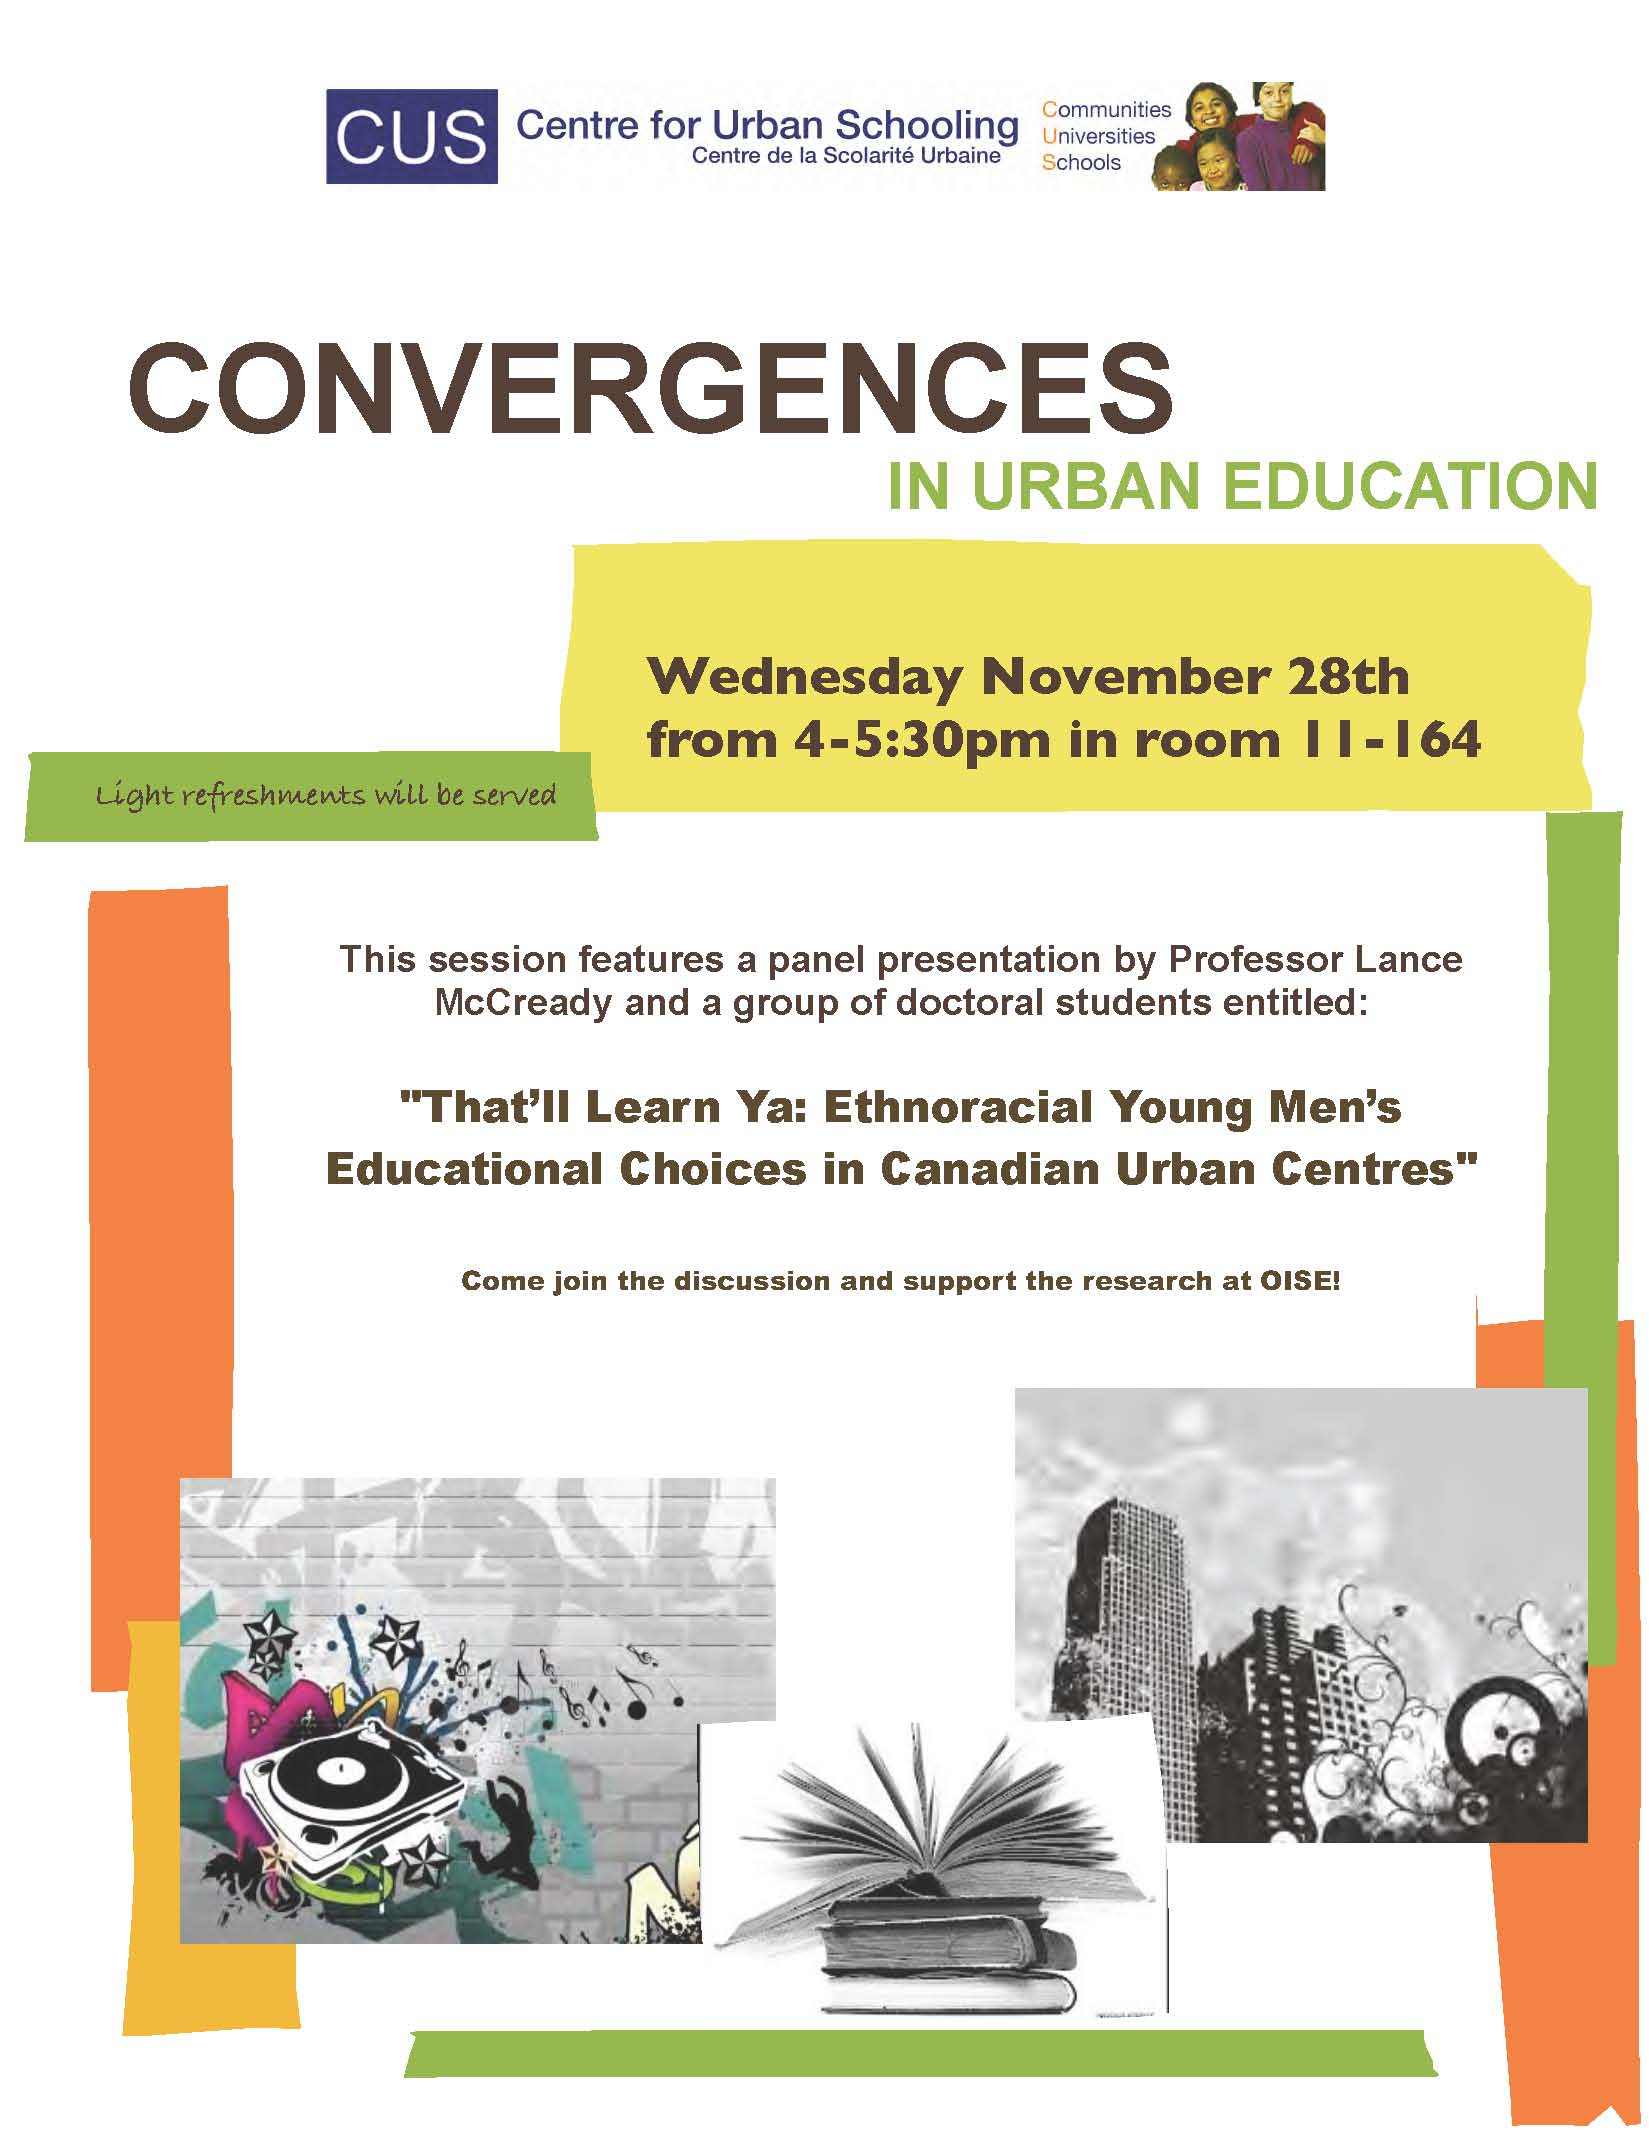 Convergences in Urban Education